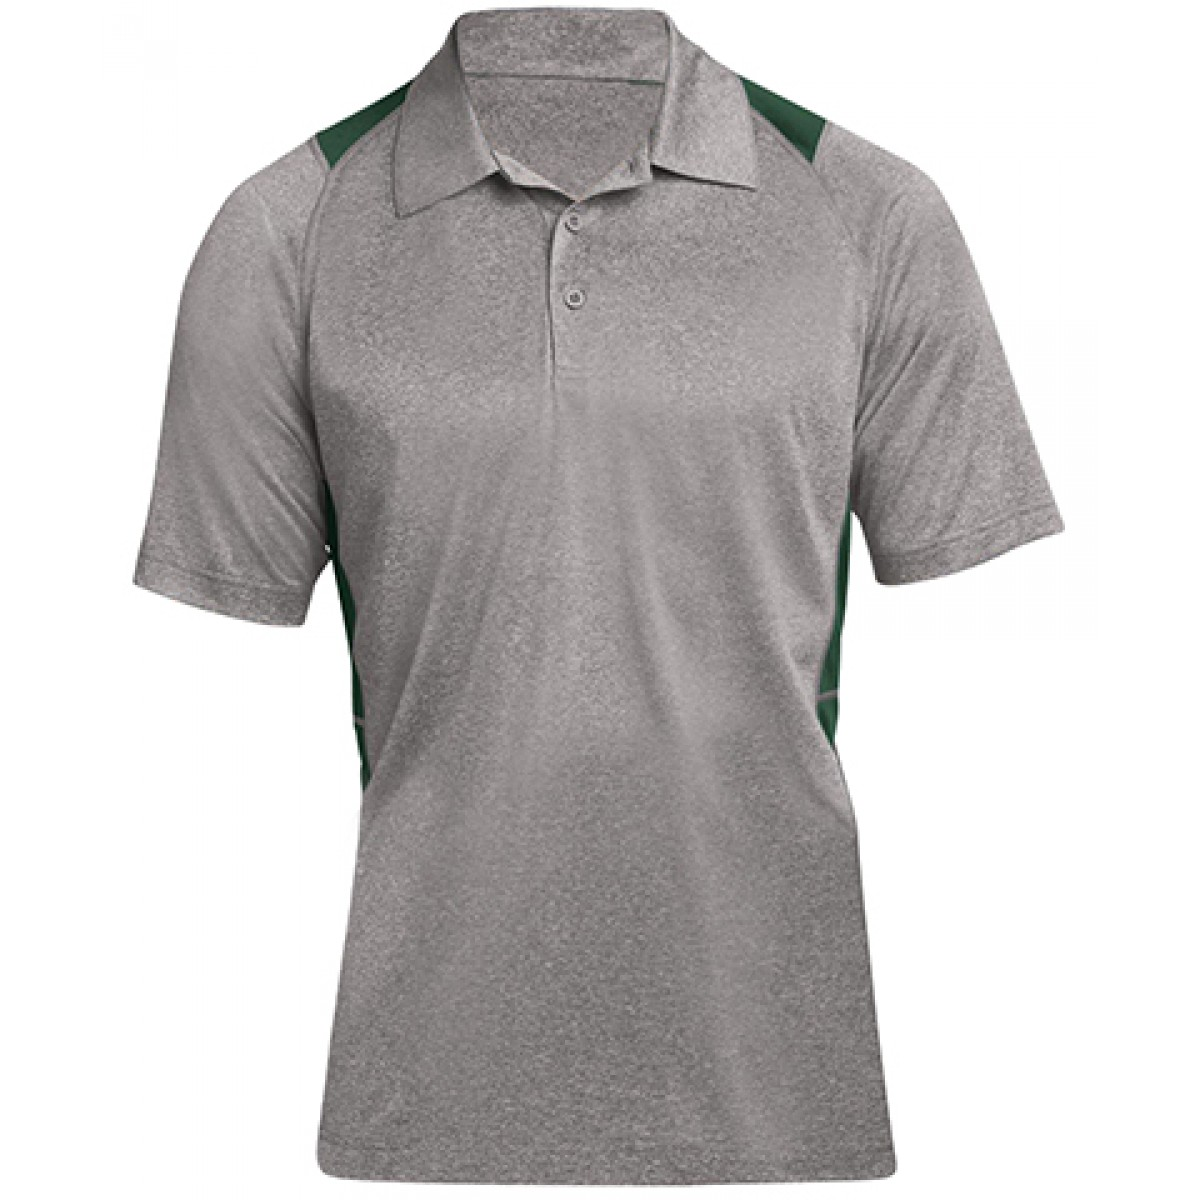 Heather Colorblock Contender Polo-Gray/Green-XL